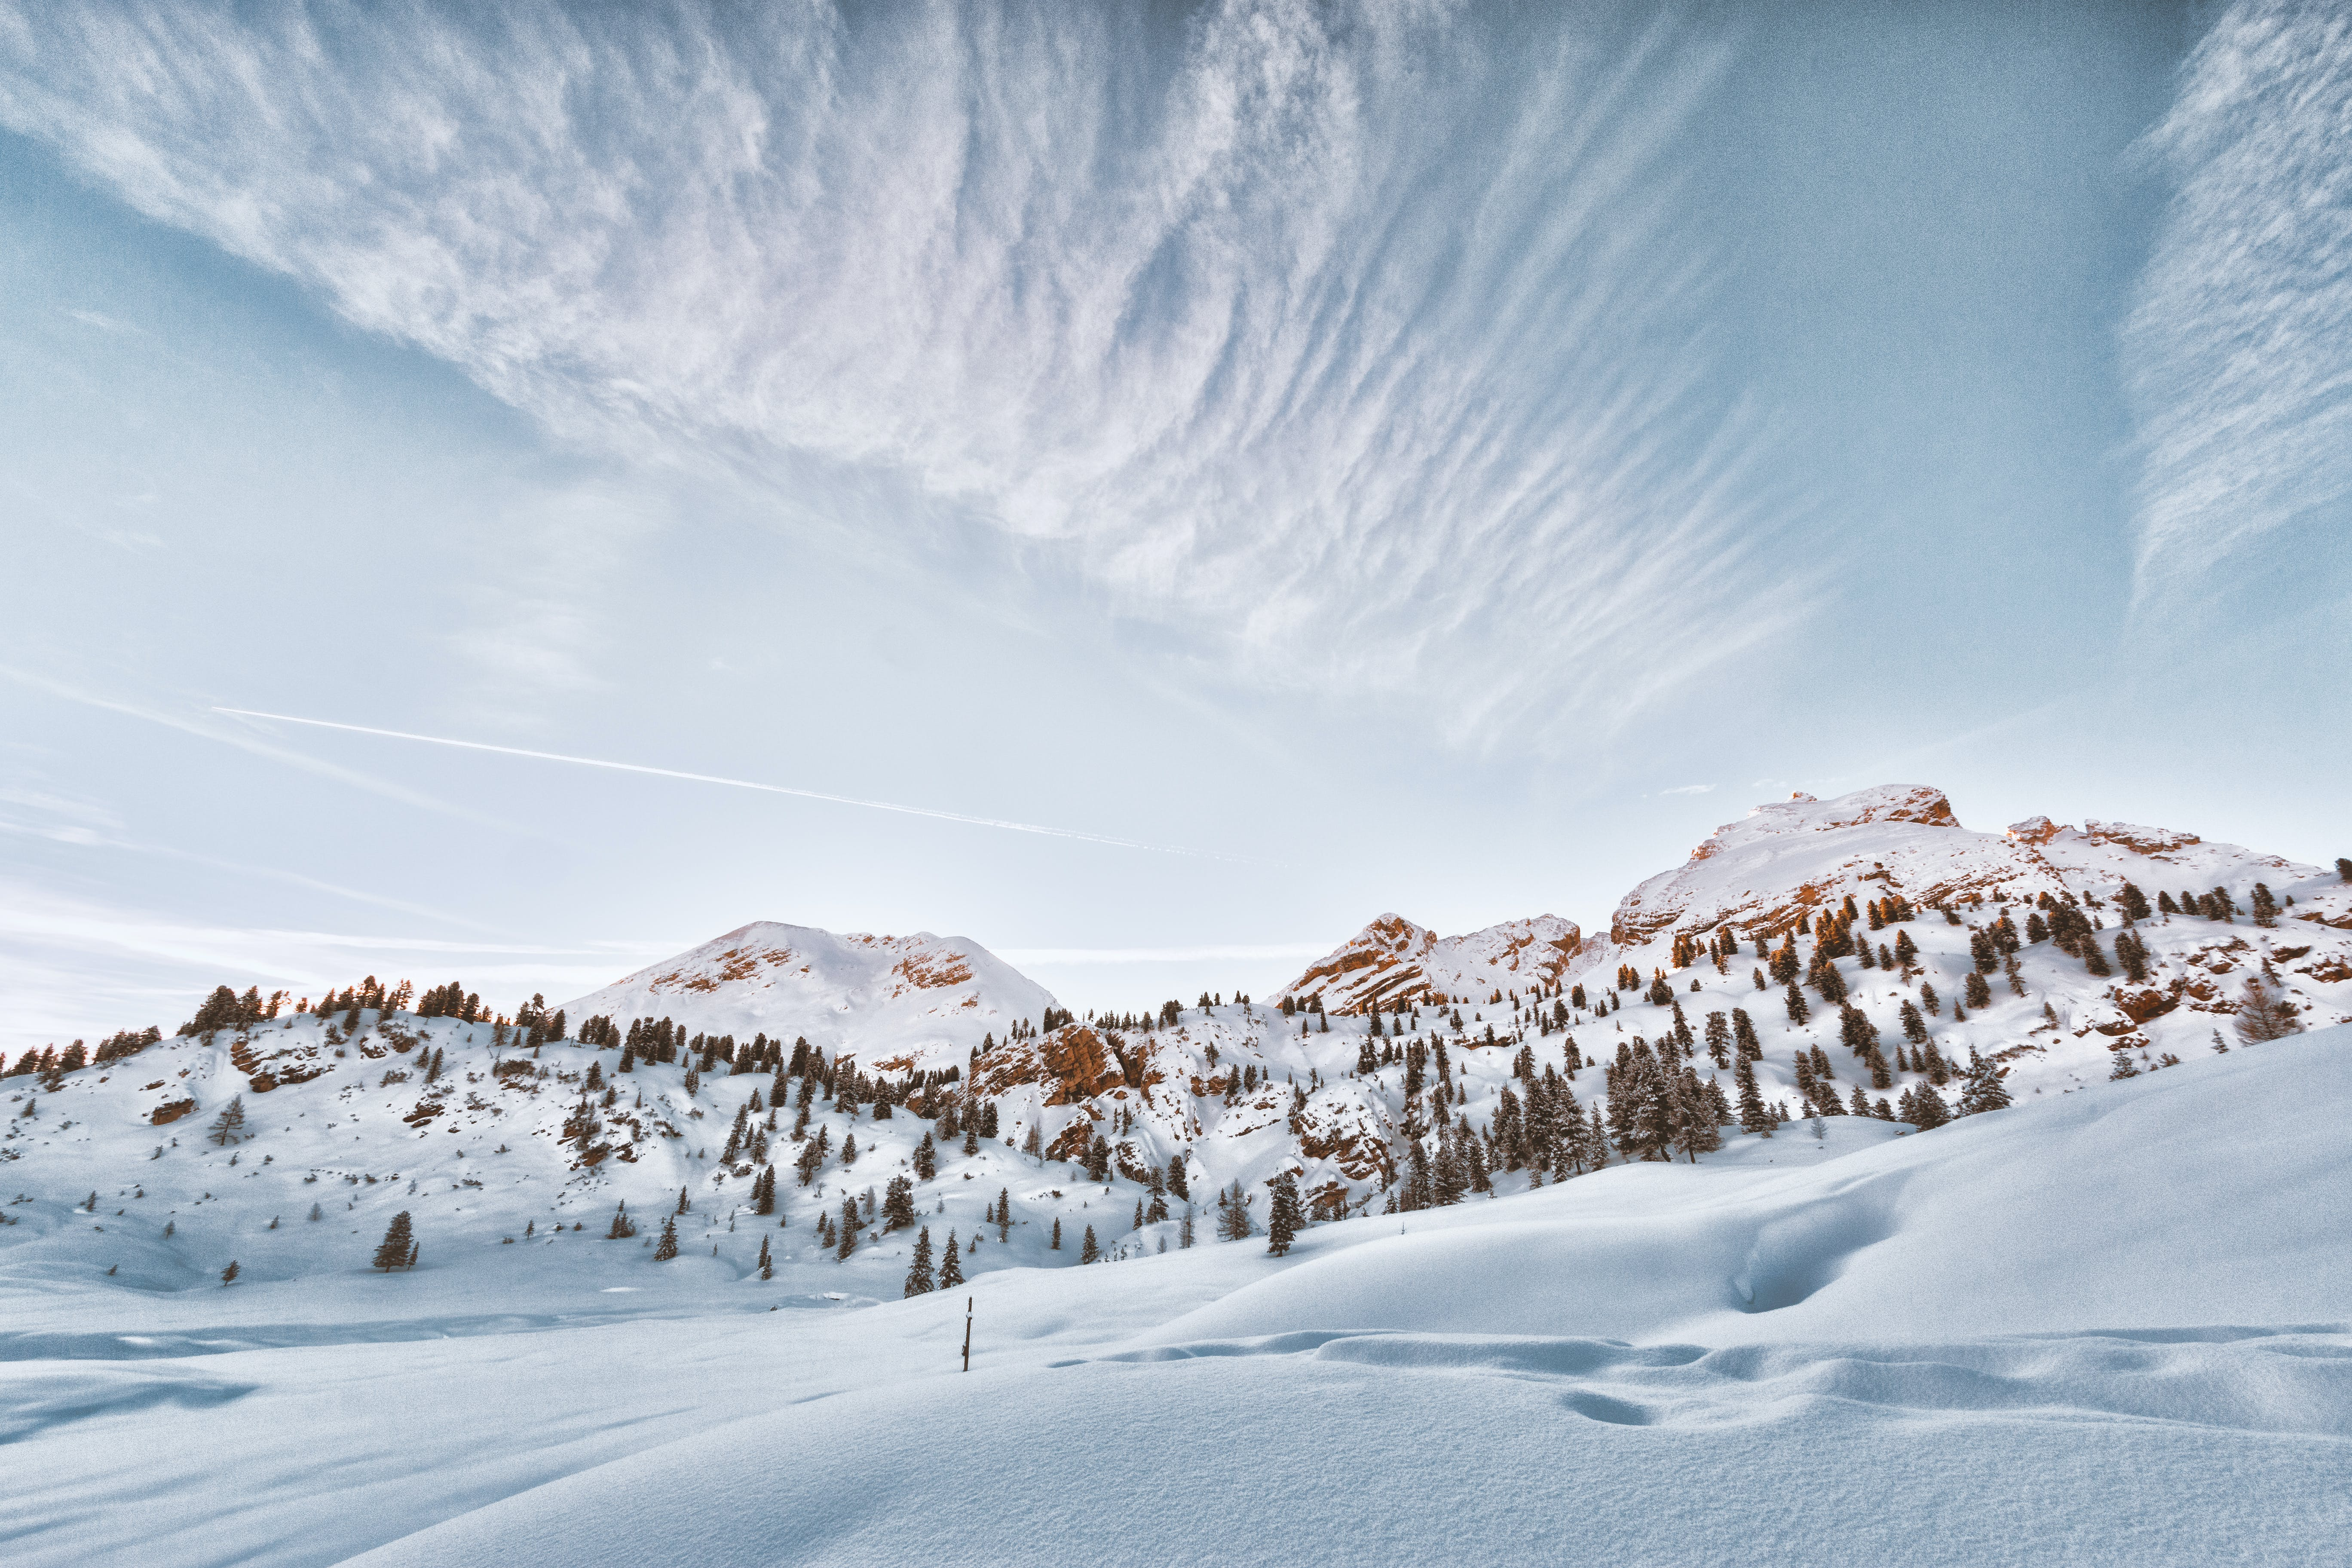 Landscape Photo of Mountain Filled With Snow